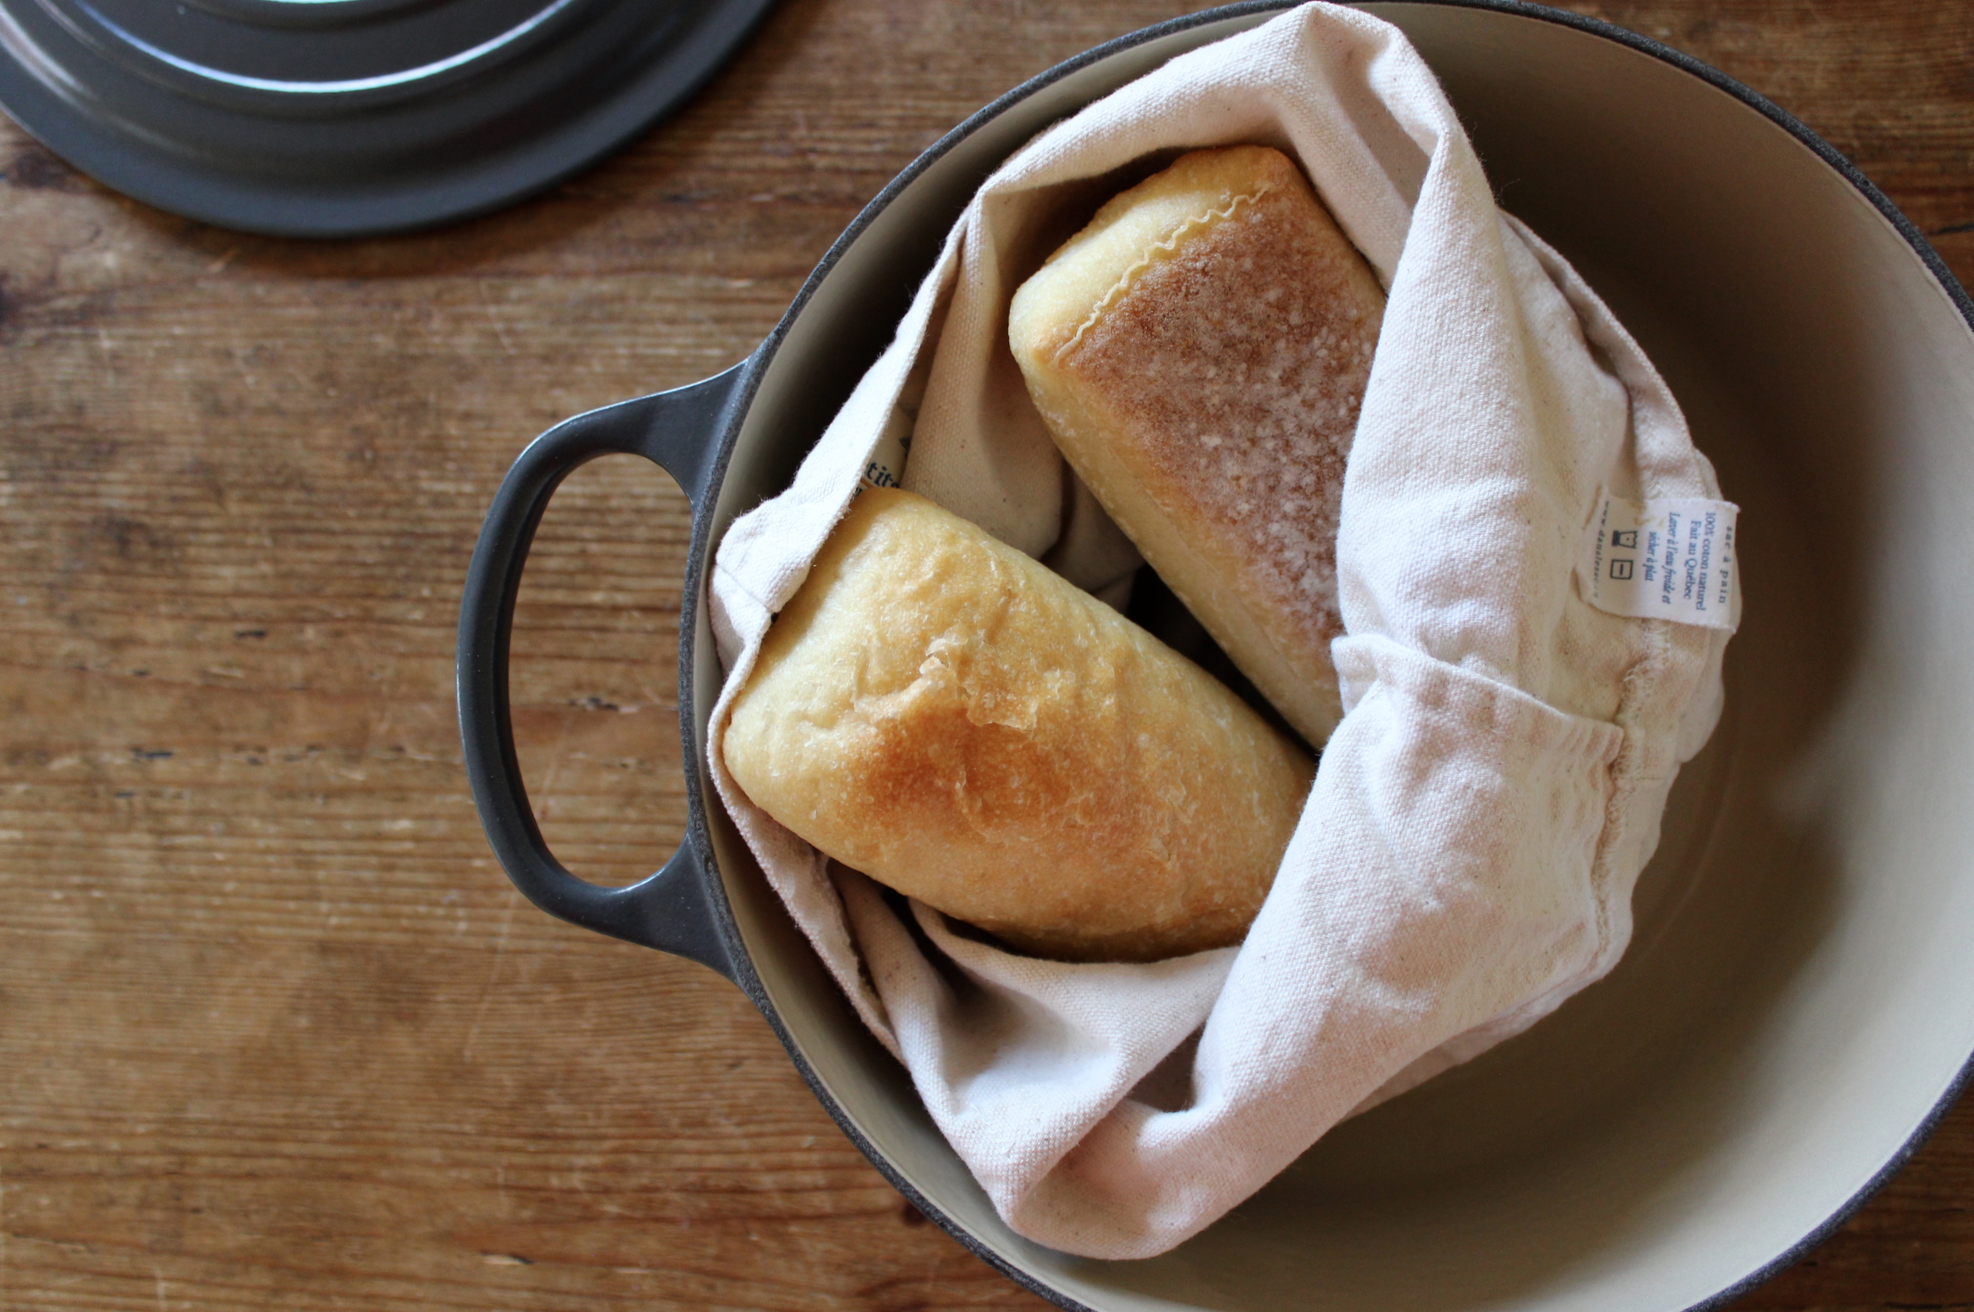 How to store bread without plastic for a zero waste kitchen | Litterless